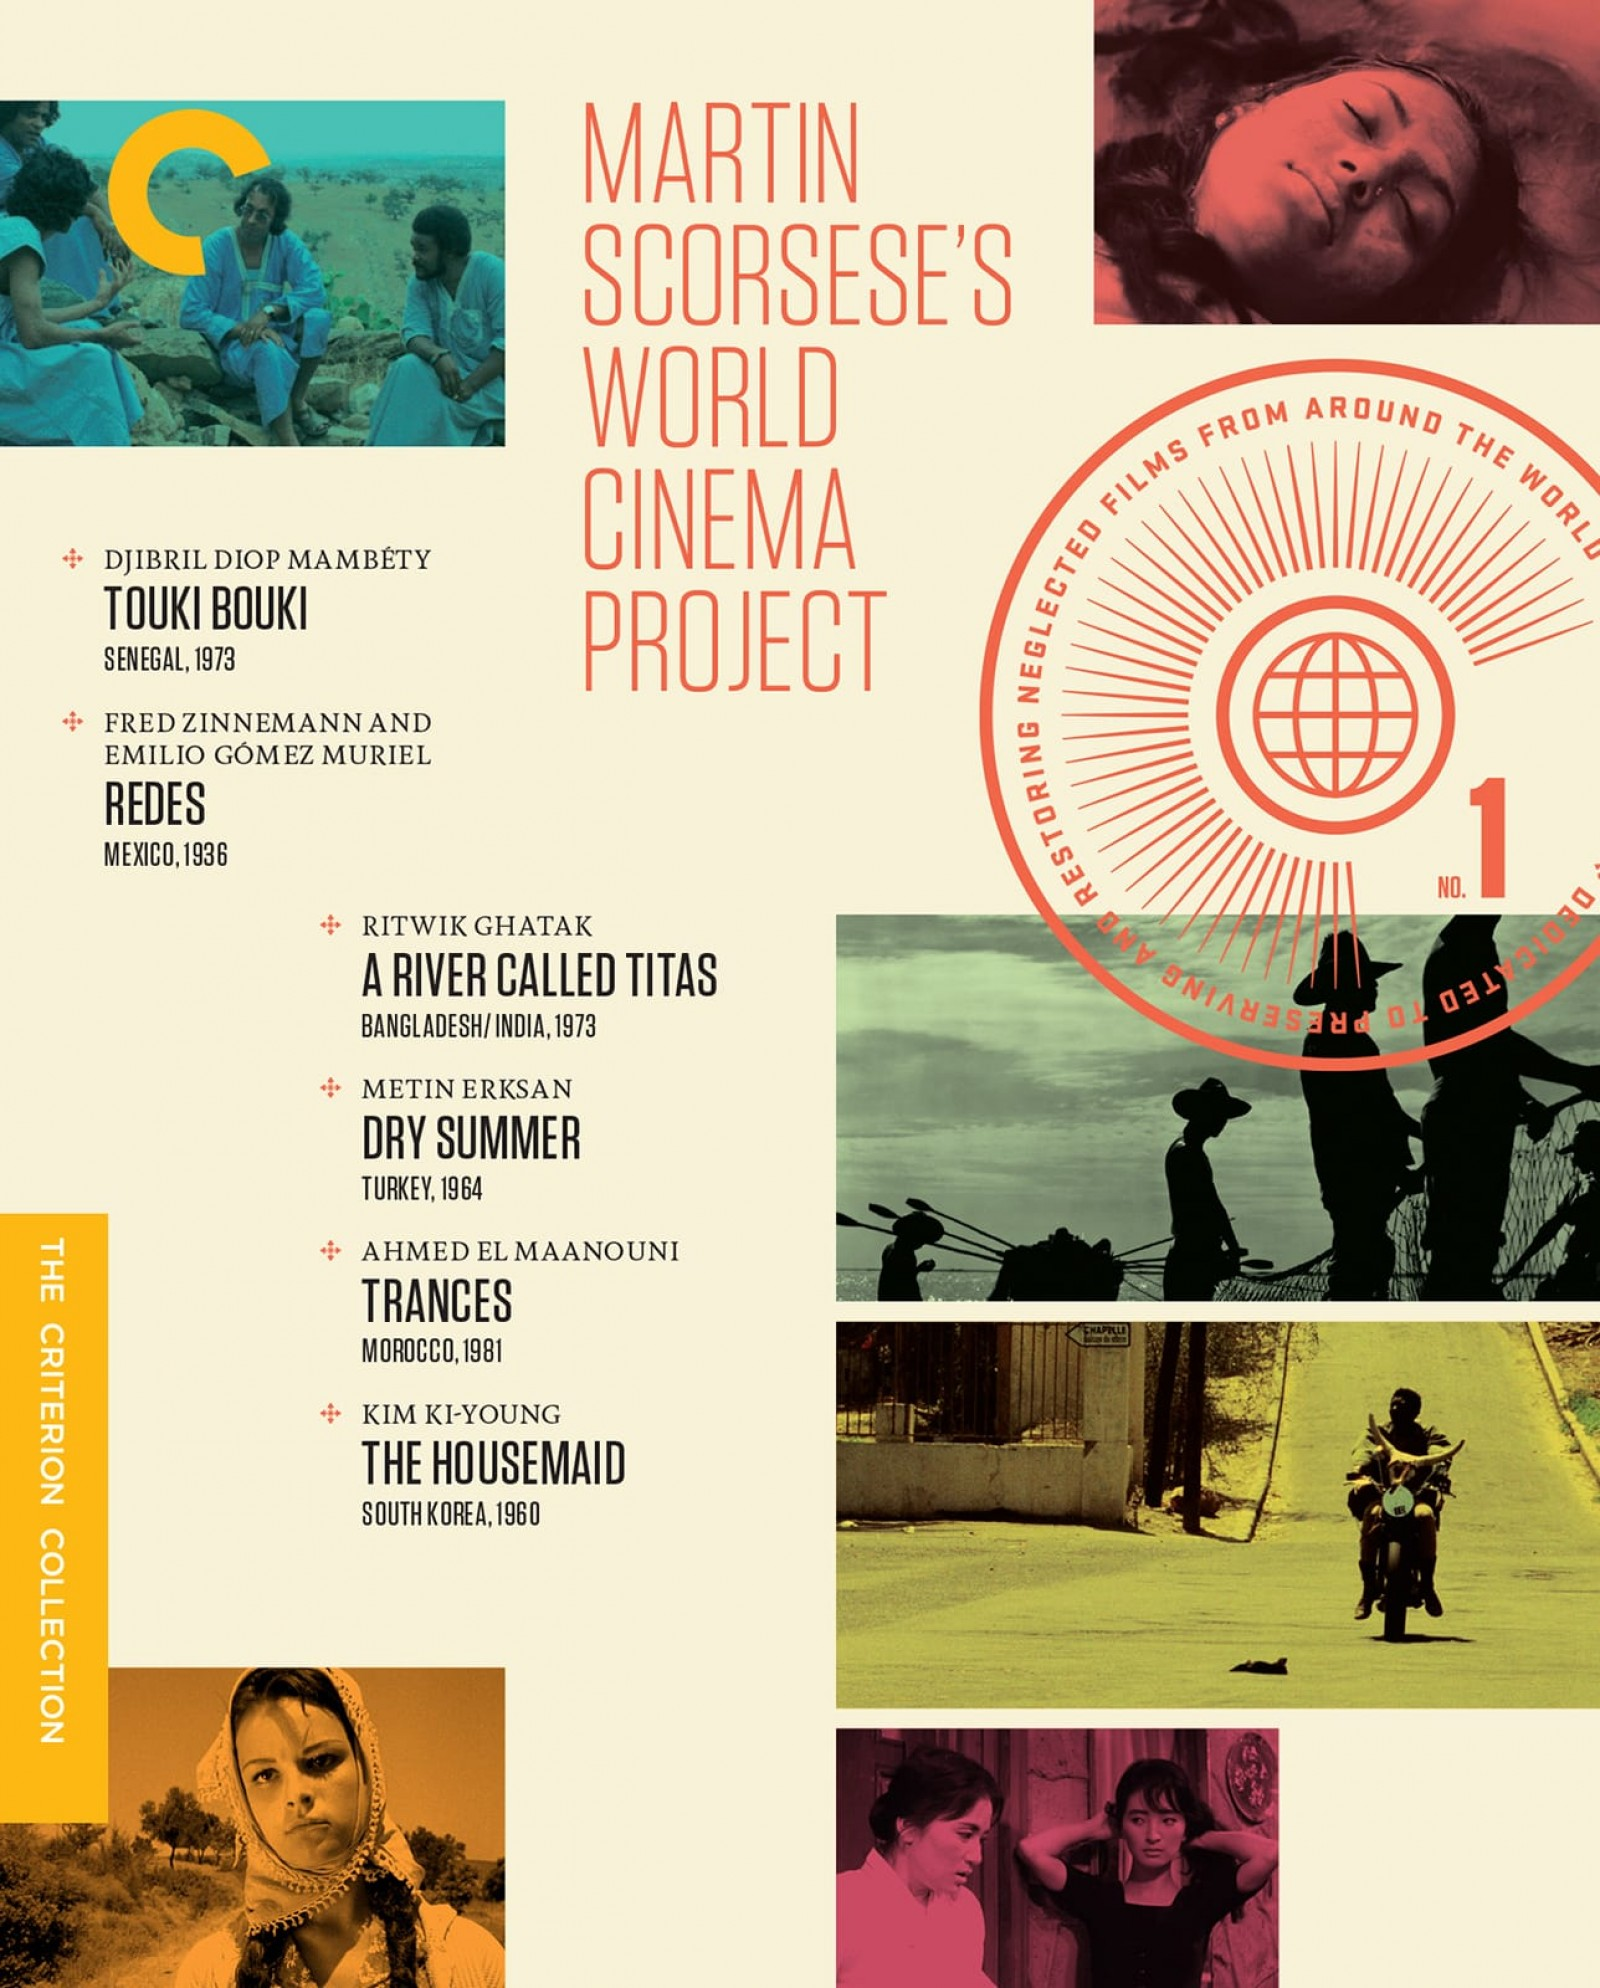 Martin Scorsese's World Cinema Project